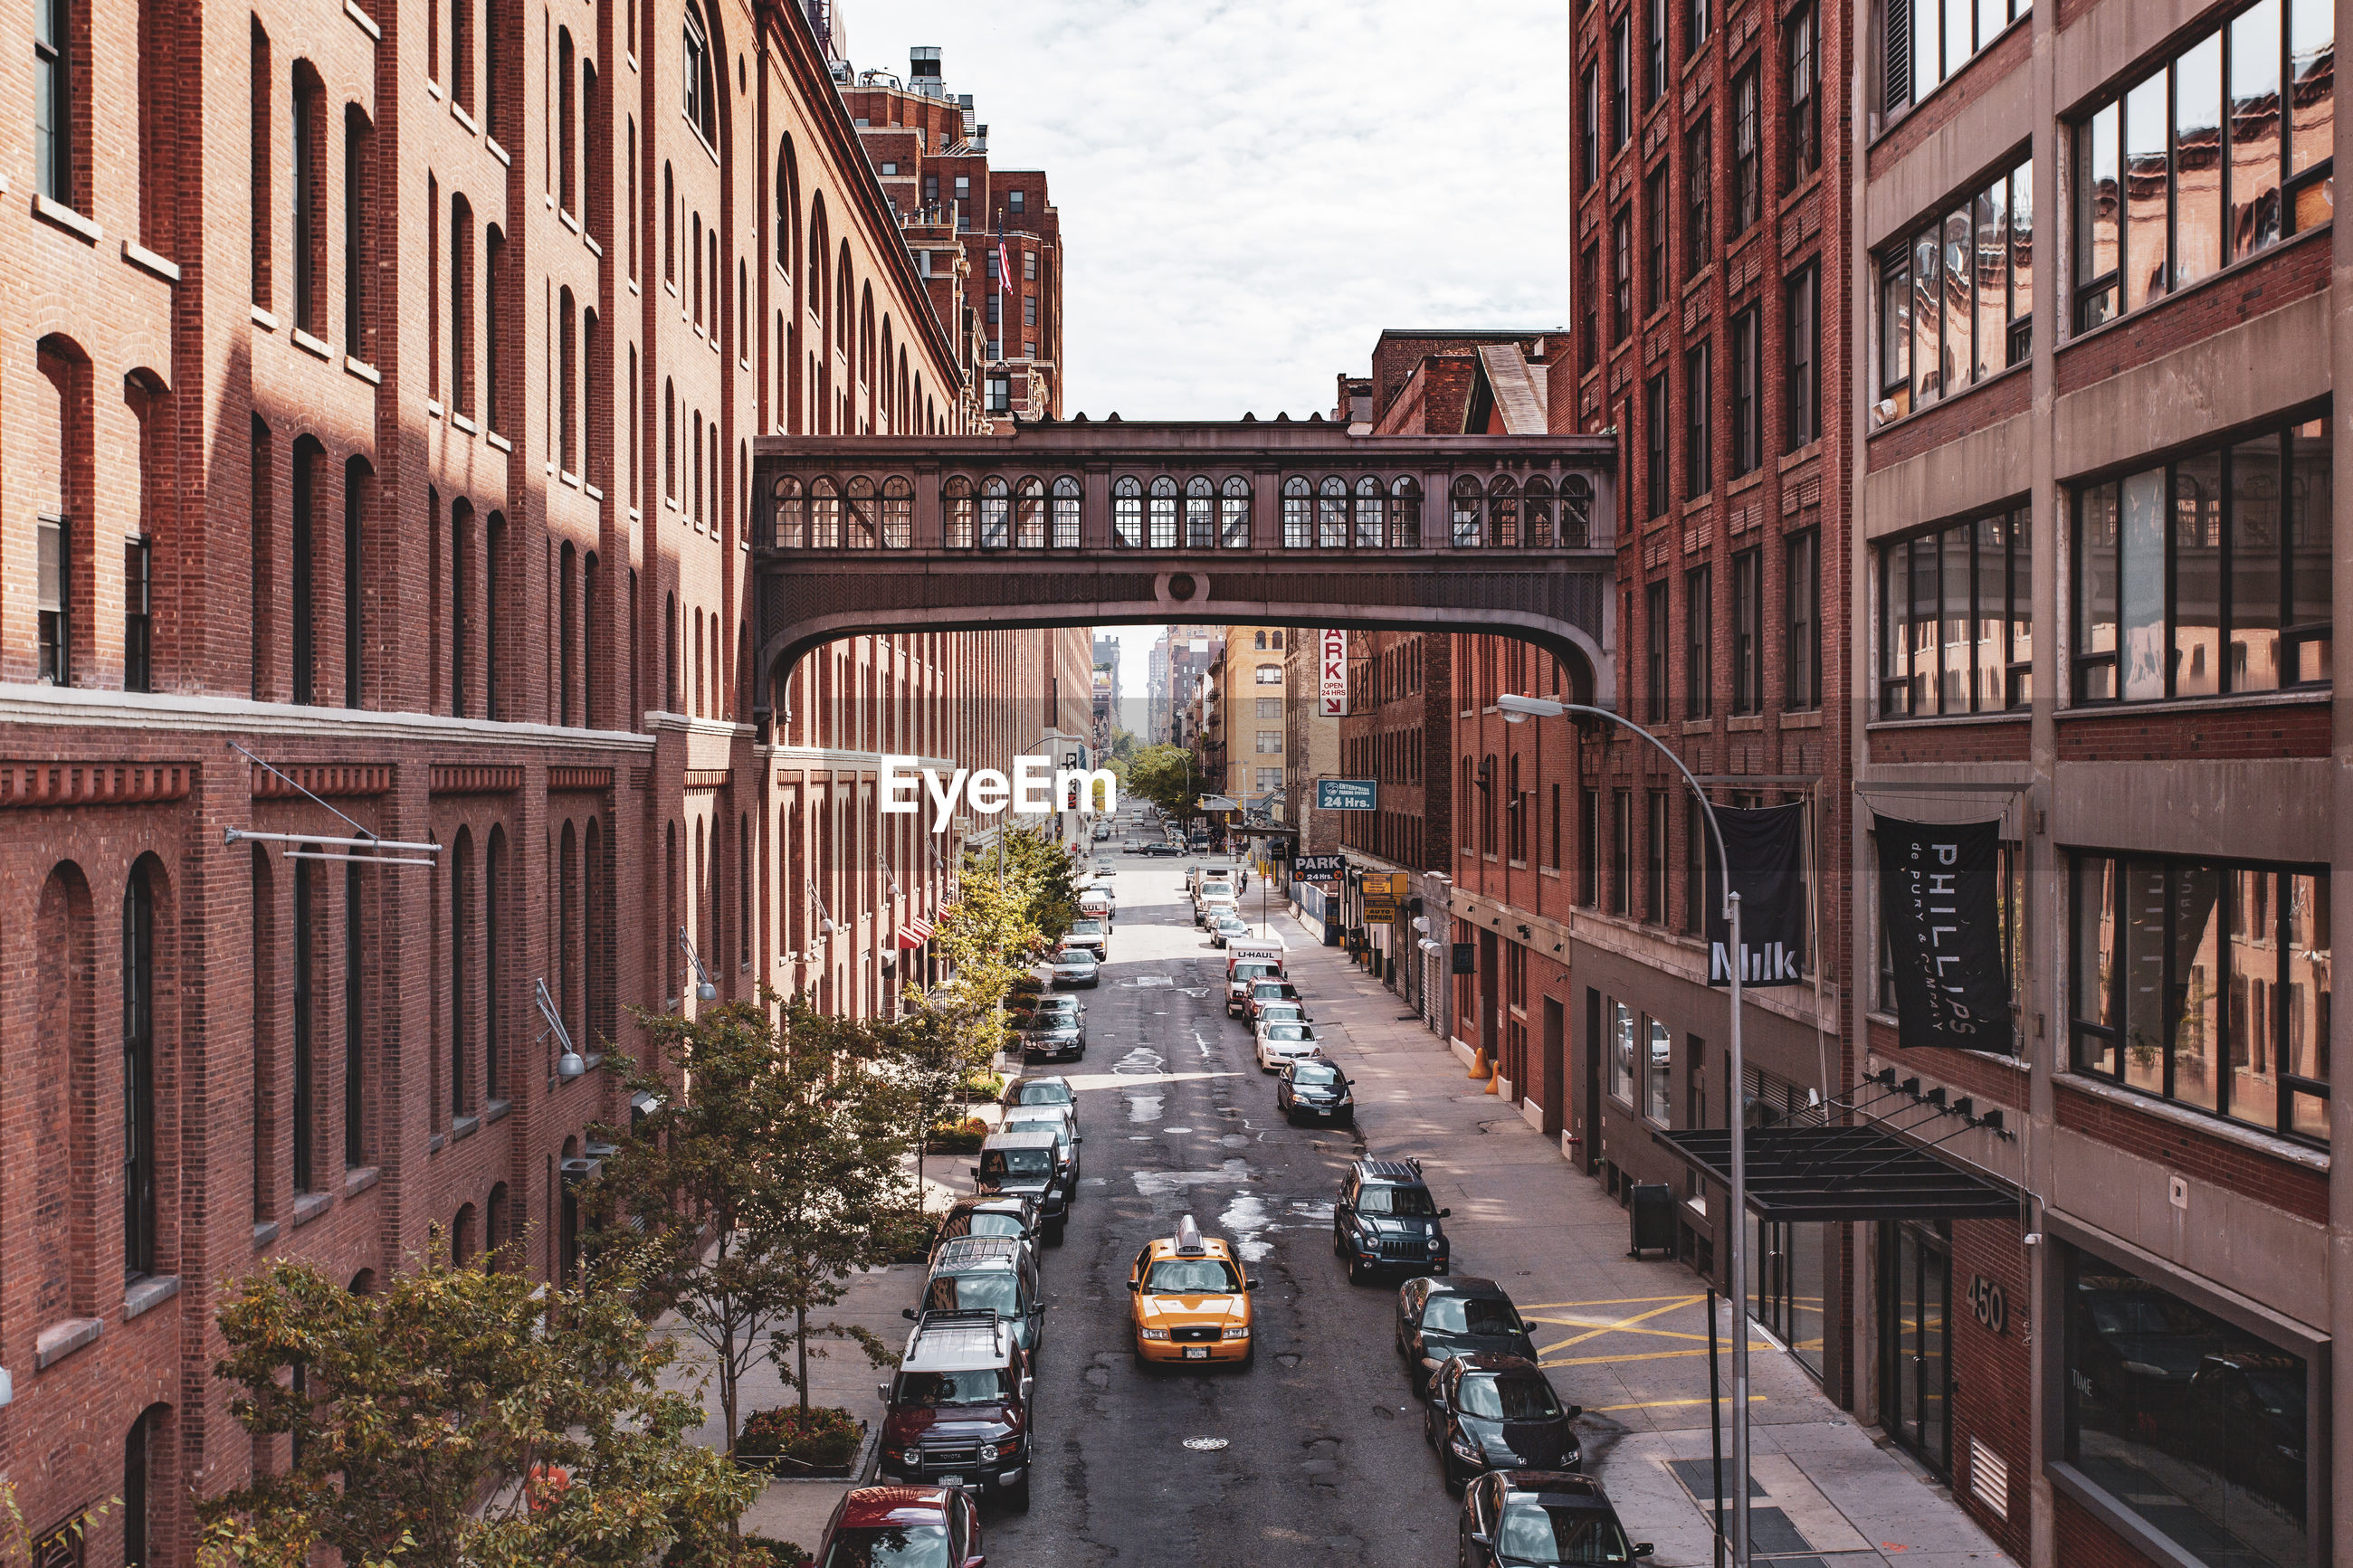 HIGH ANGLE VIEW OF BRIDGE AMIDST BUILDINGS IN CITY